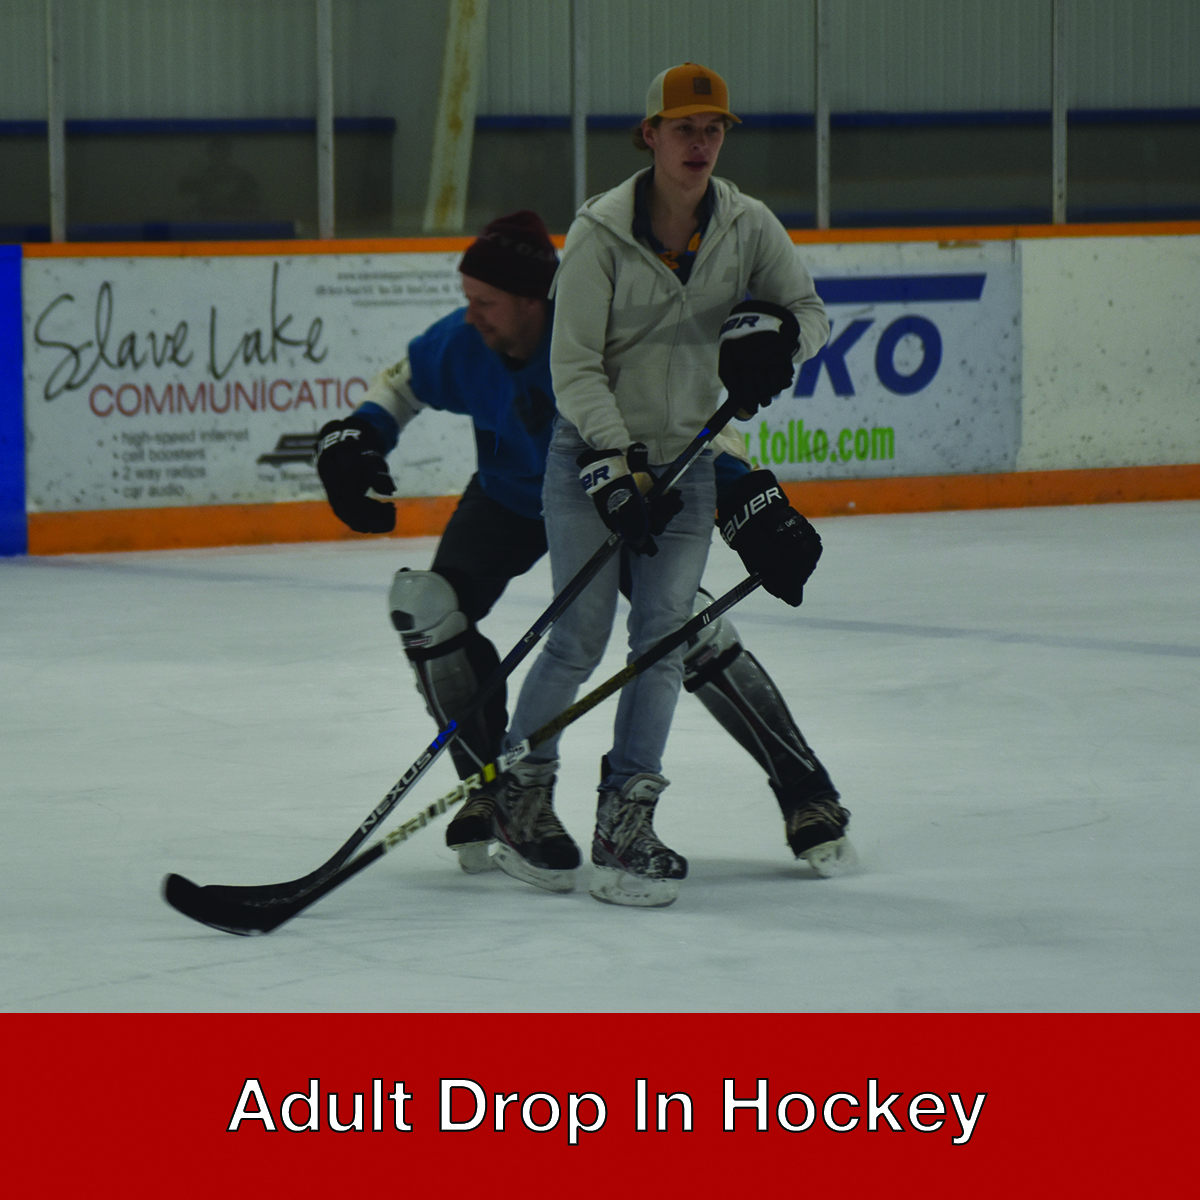 Adult Drop In Hockey